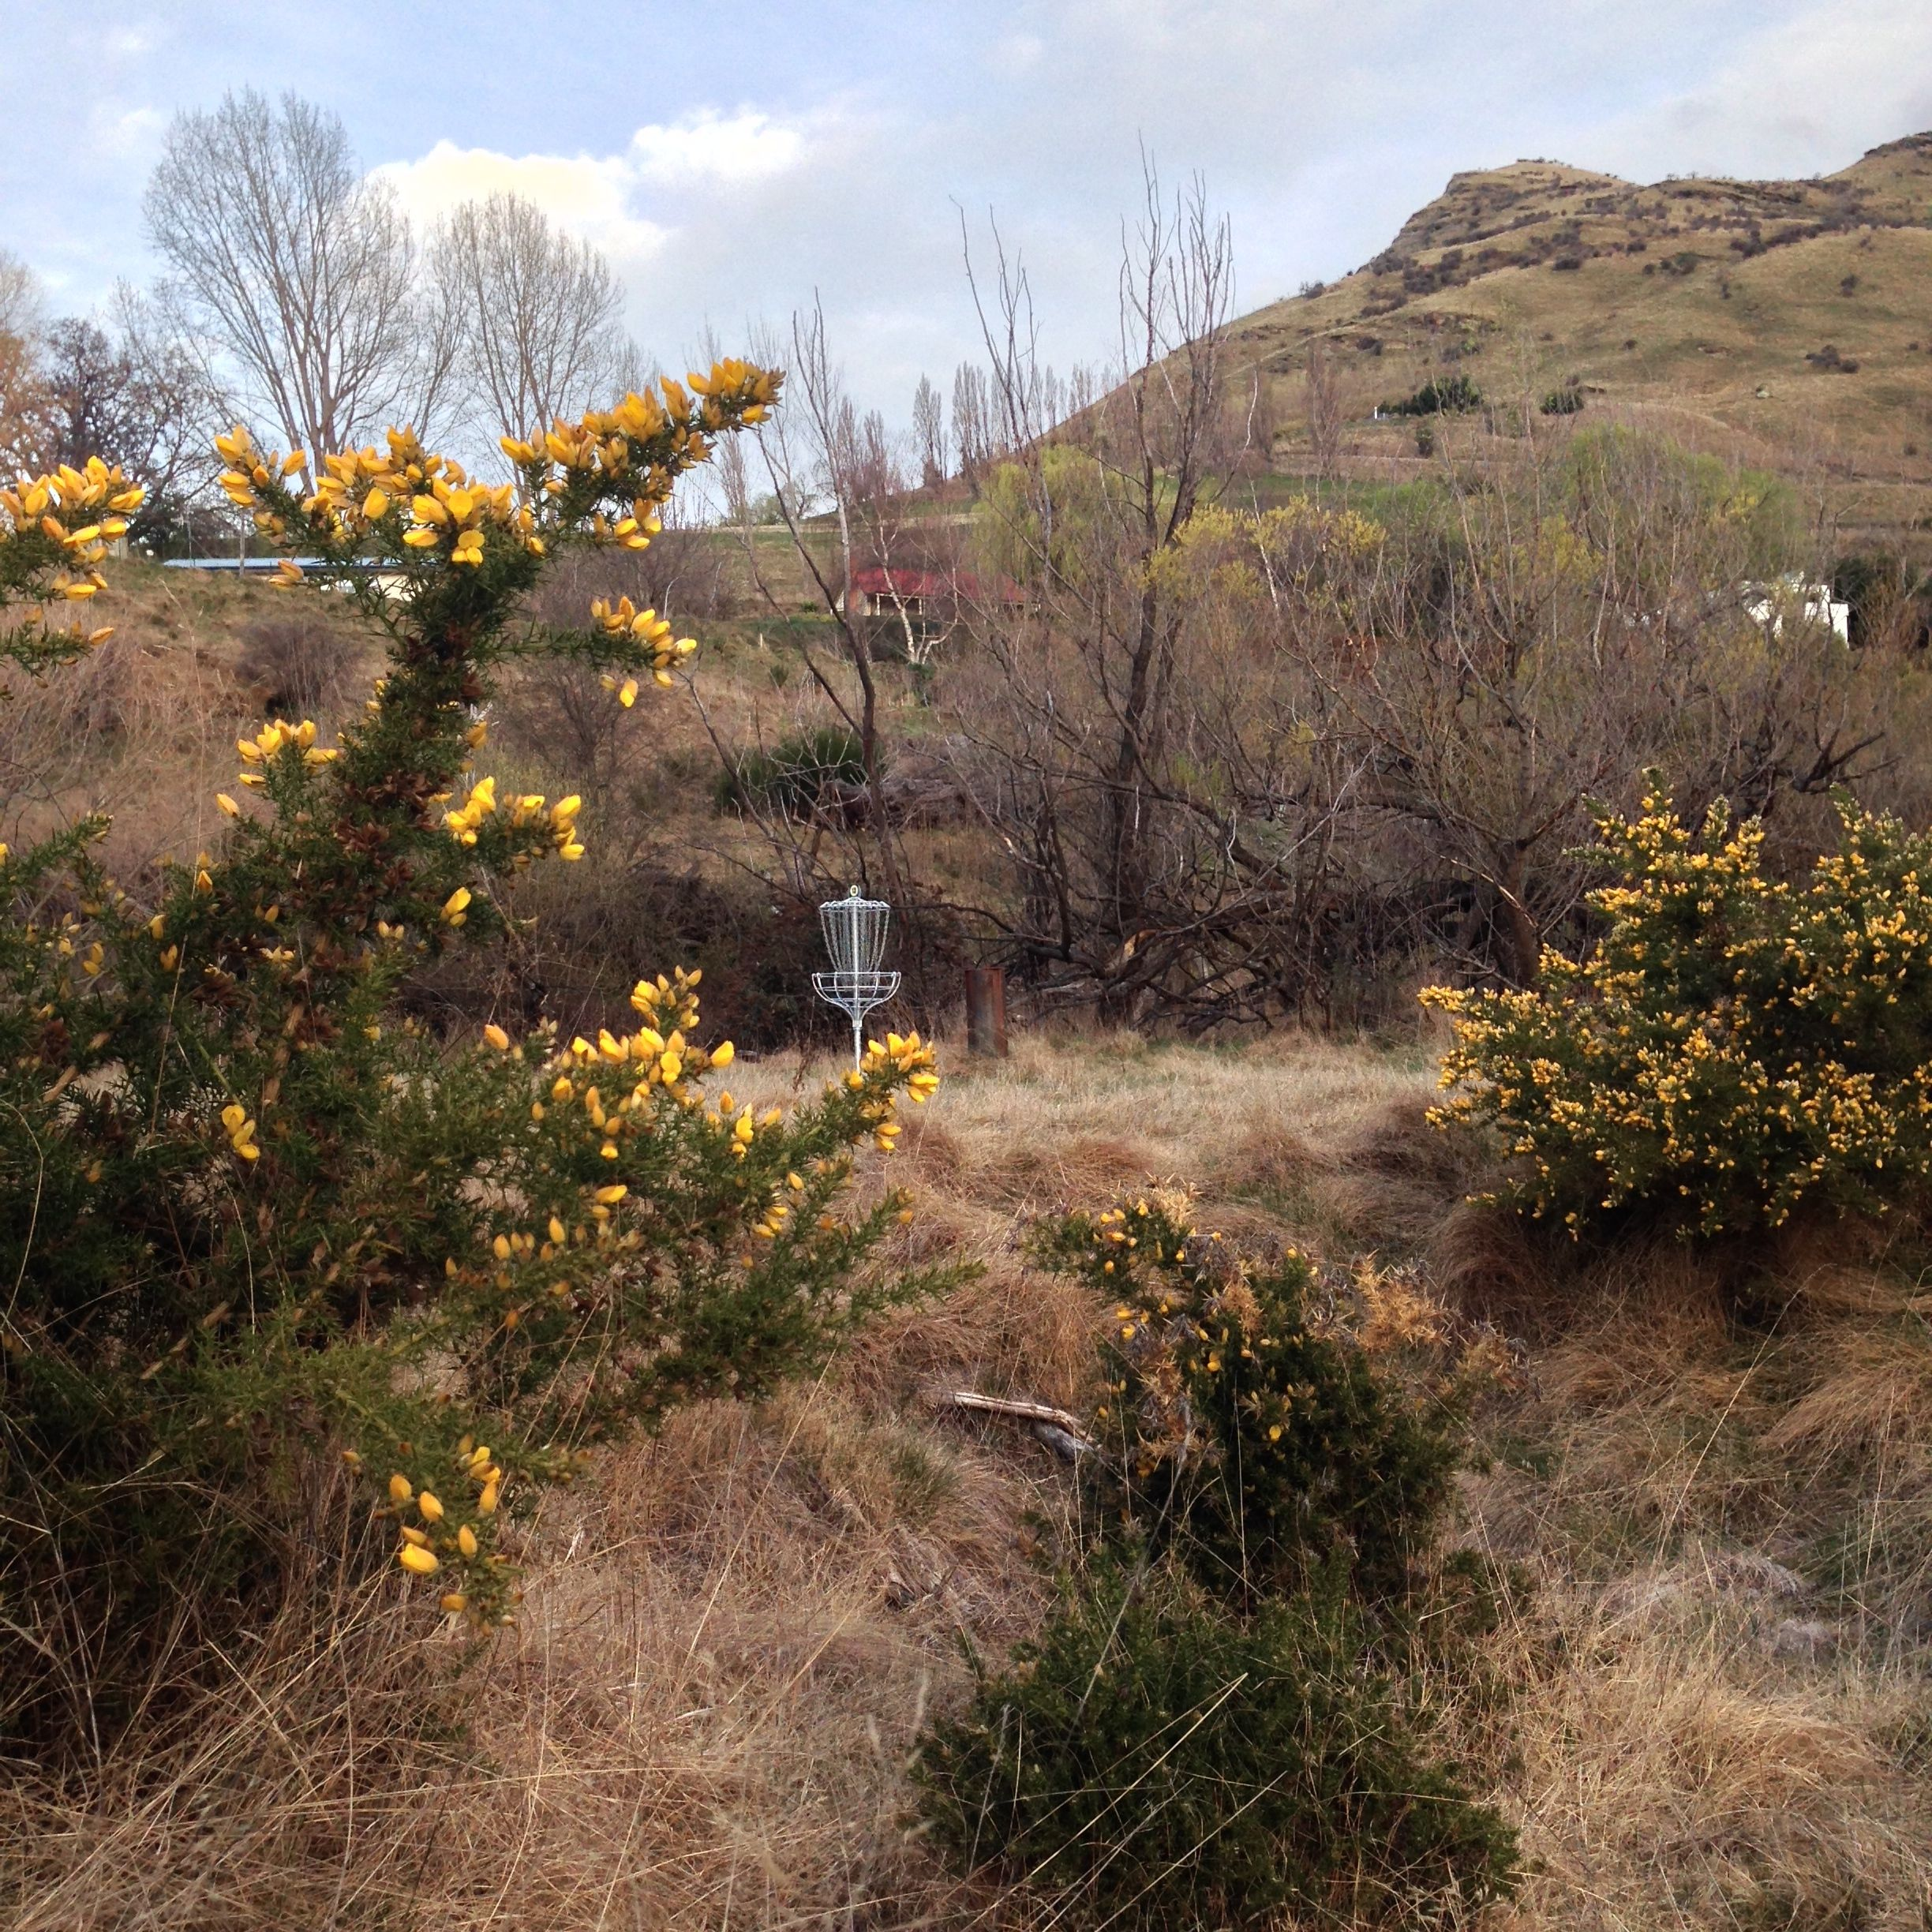 Disc basket with invasive (beautiful) Scotch broom, in the fore ground.